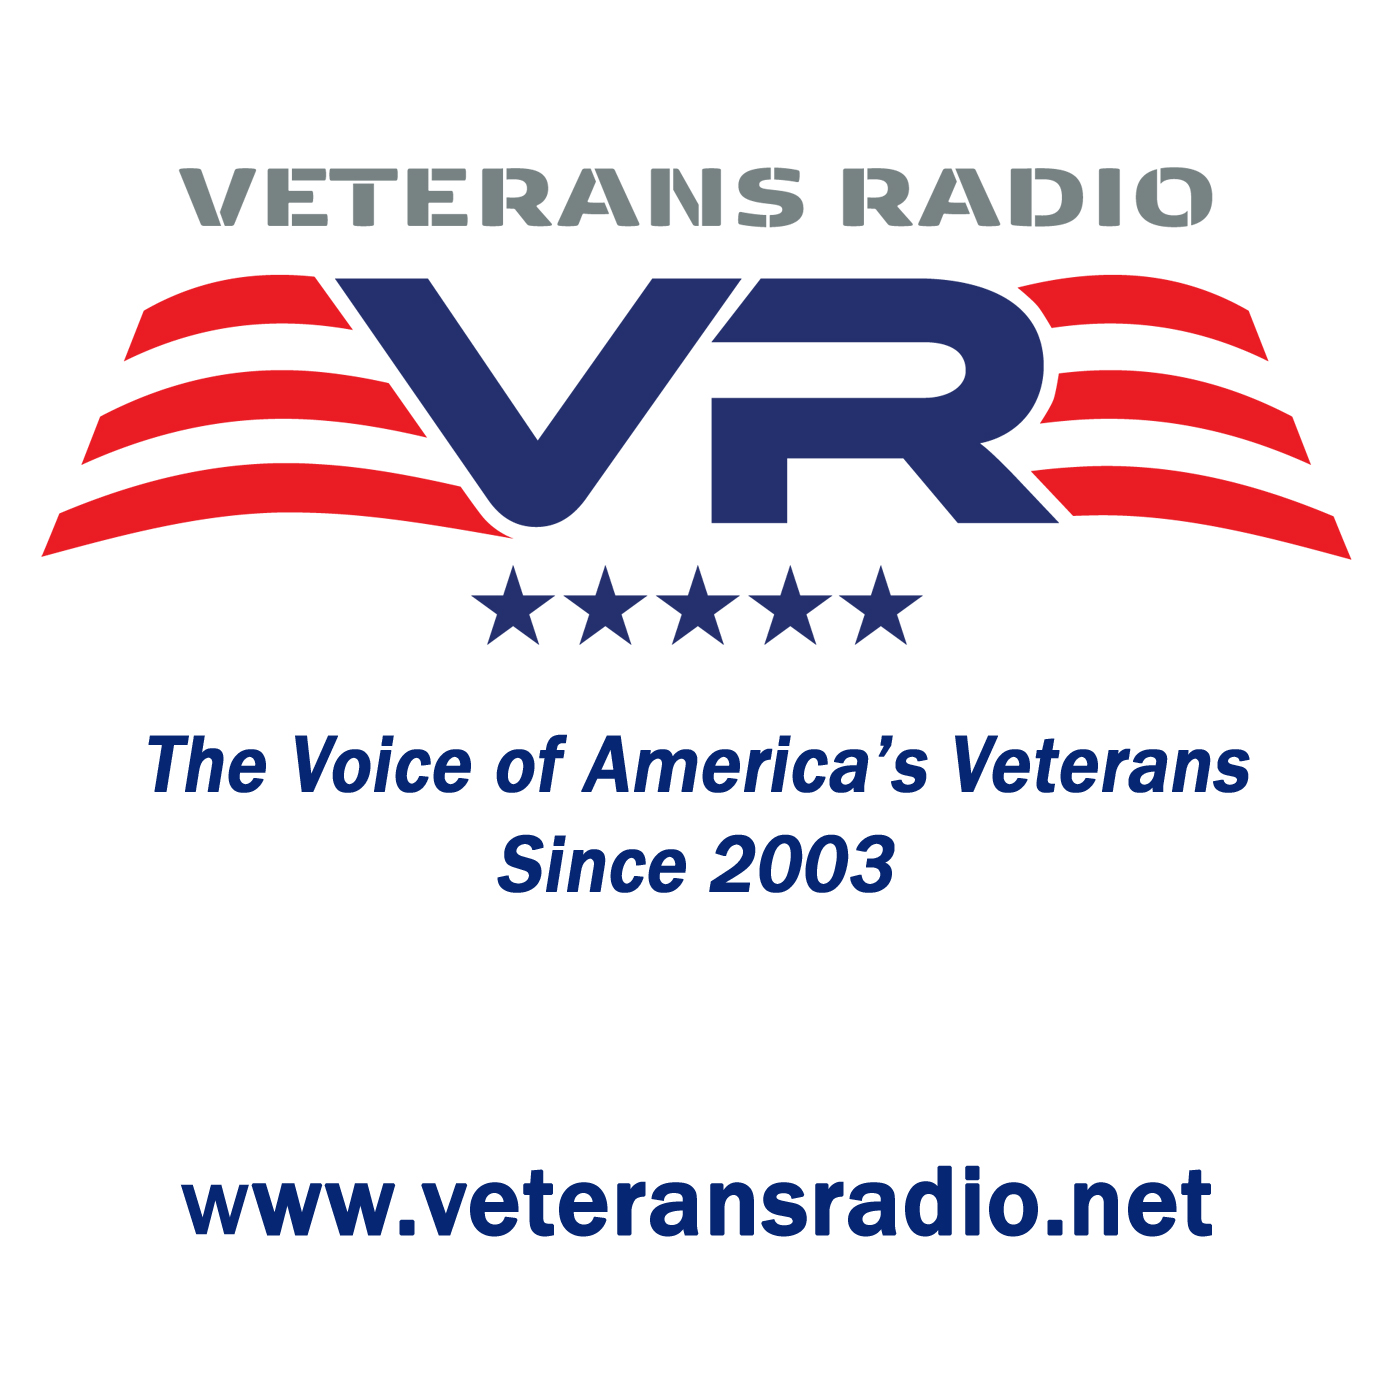 Veterans Radio, The Voice of America's Veterans since 2003